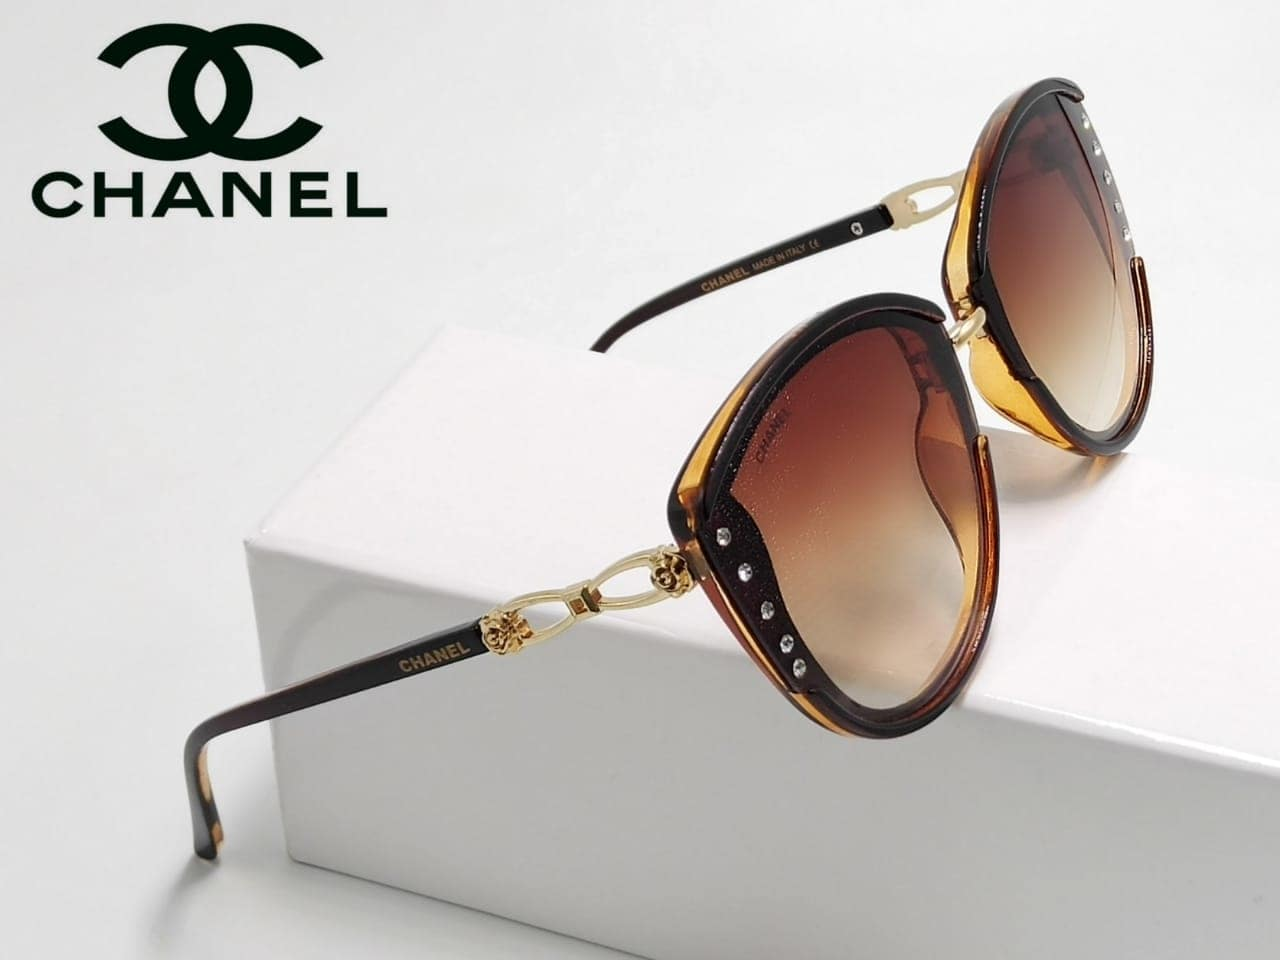 😍 *CHANEL IN STOCK* 😍 🕶🕶🕶🕶🕶🕶🕶🕶🕶🕶 👉 HIGH QUALITY 👉 100% UV PROTECTED 👉 WITH ORIGINAL BRAND BOX AND ACCESSORIES 🕶🕶🕶🕶🕶🕶🕶🕶🕶🕶 💰 *PRICE @1250/-*   ⛵ *SHIPPING FREE*⛵..w LB 9501023209